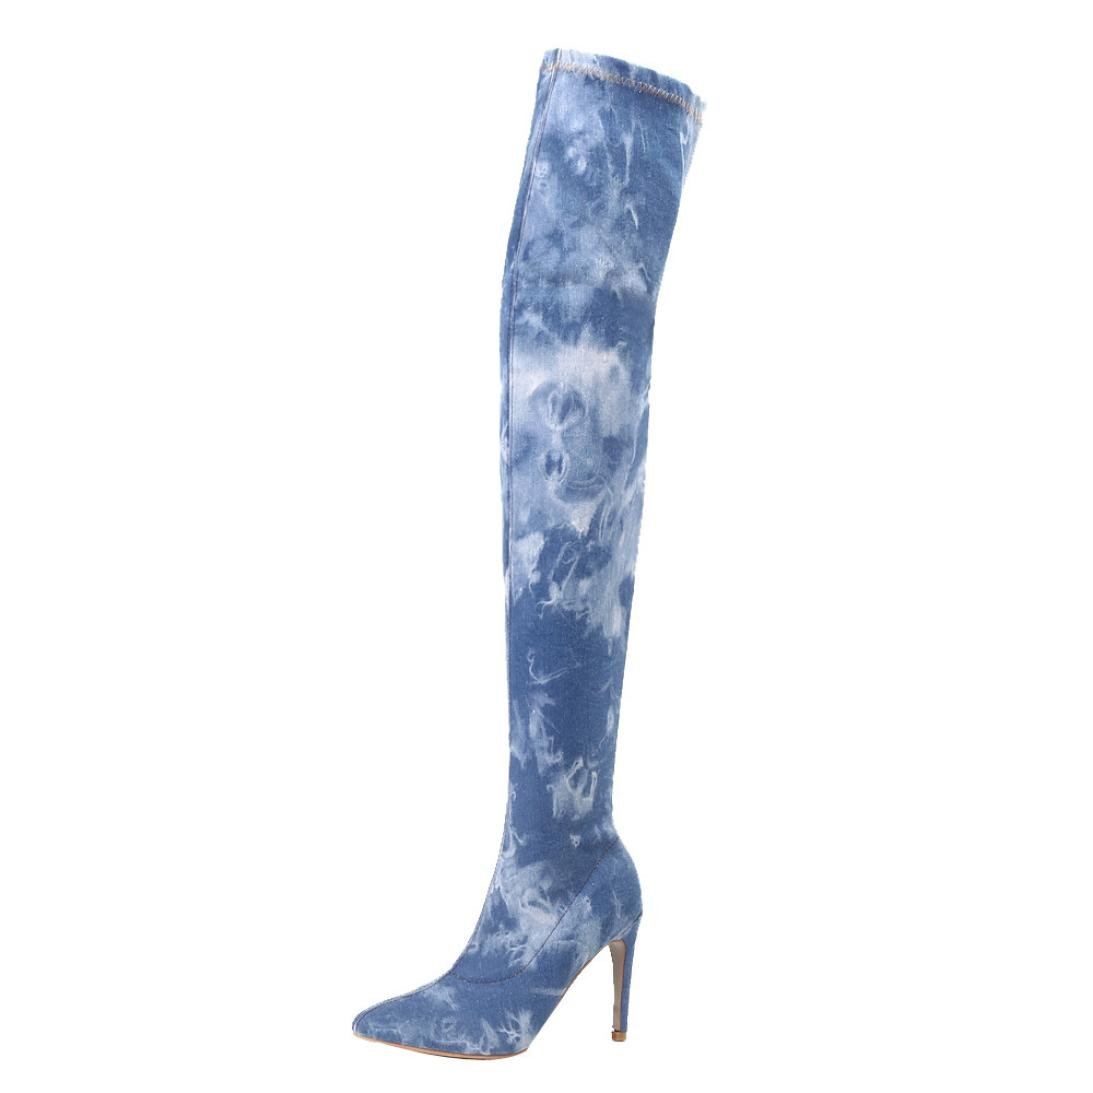 Women's Cowboy Long Combat Style Over-the-Knee Stiletto Chunky Heel Long Boots Winter Boots (US:6.5, Blue)